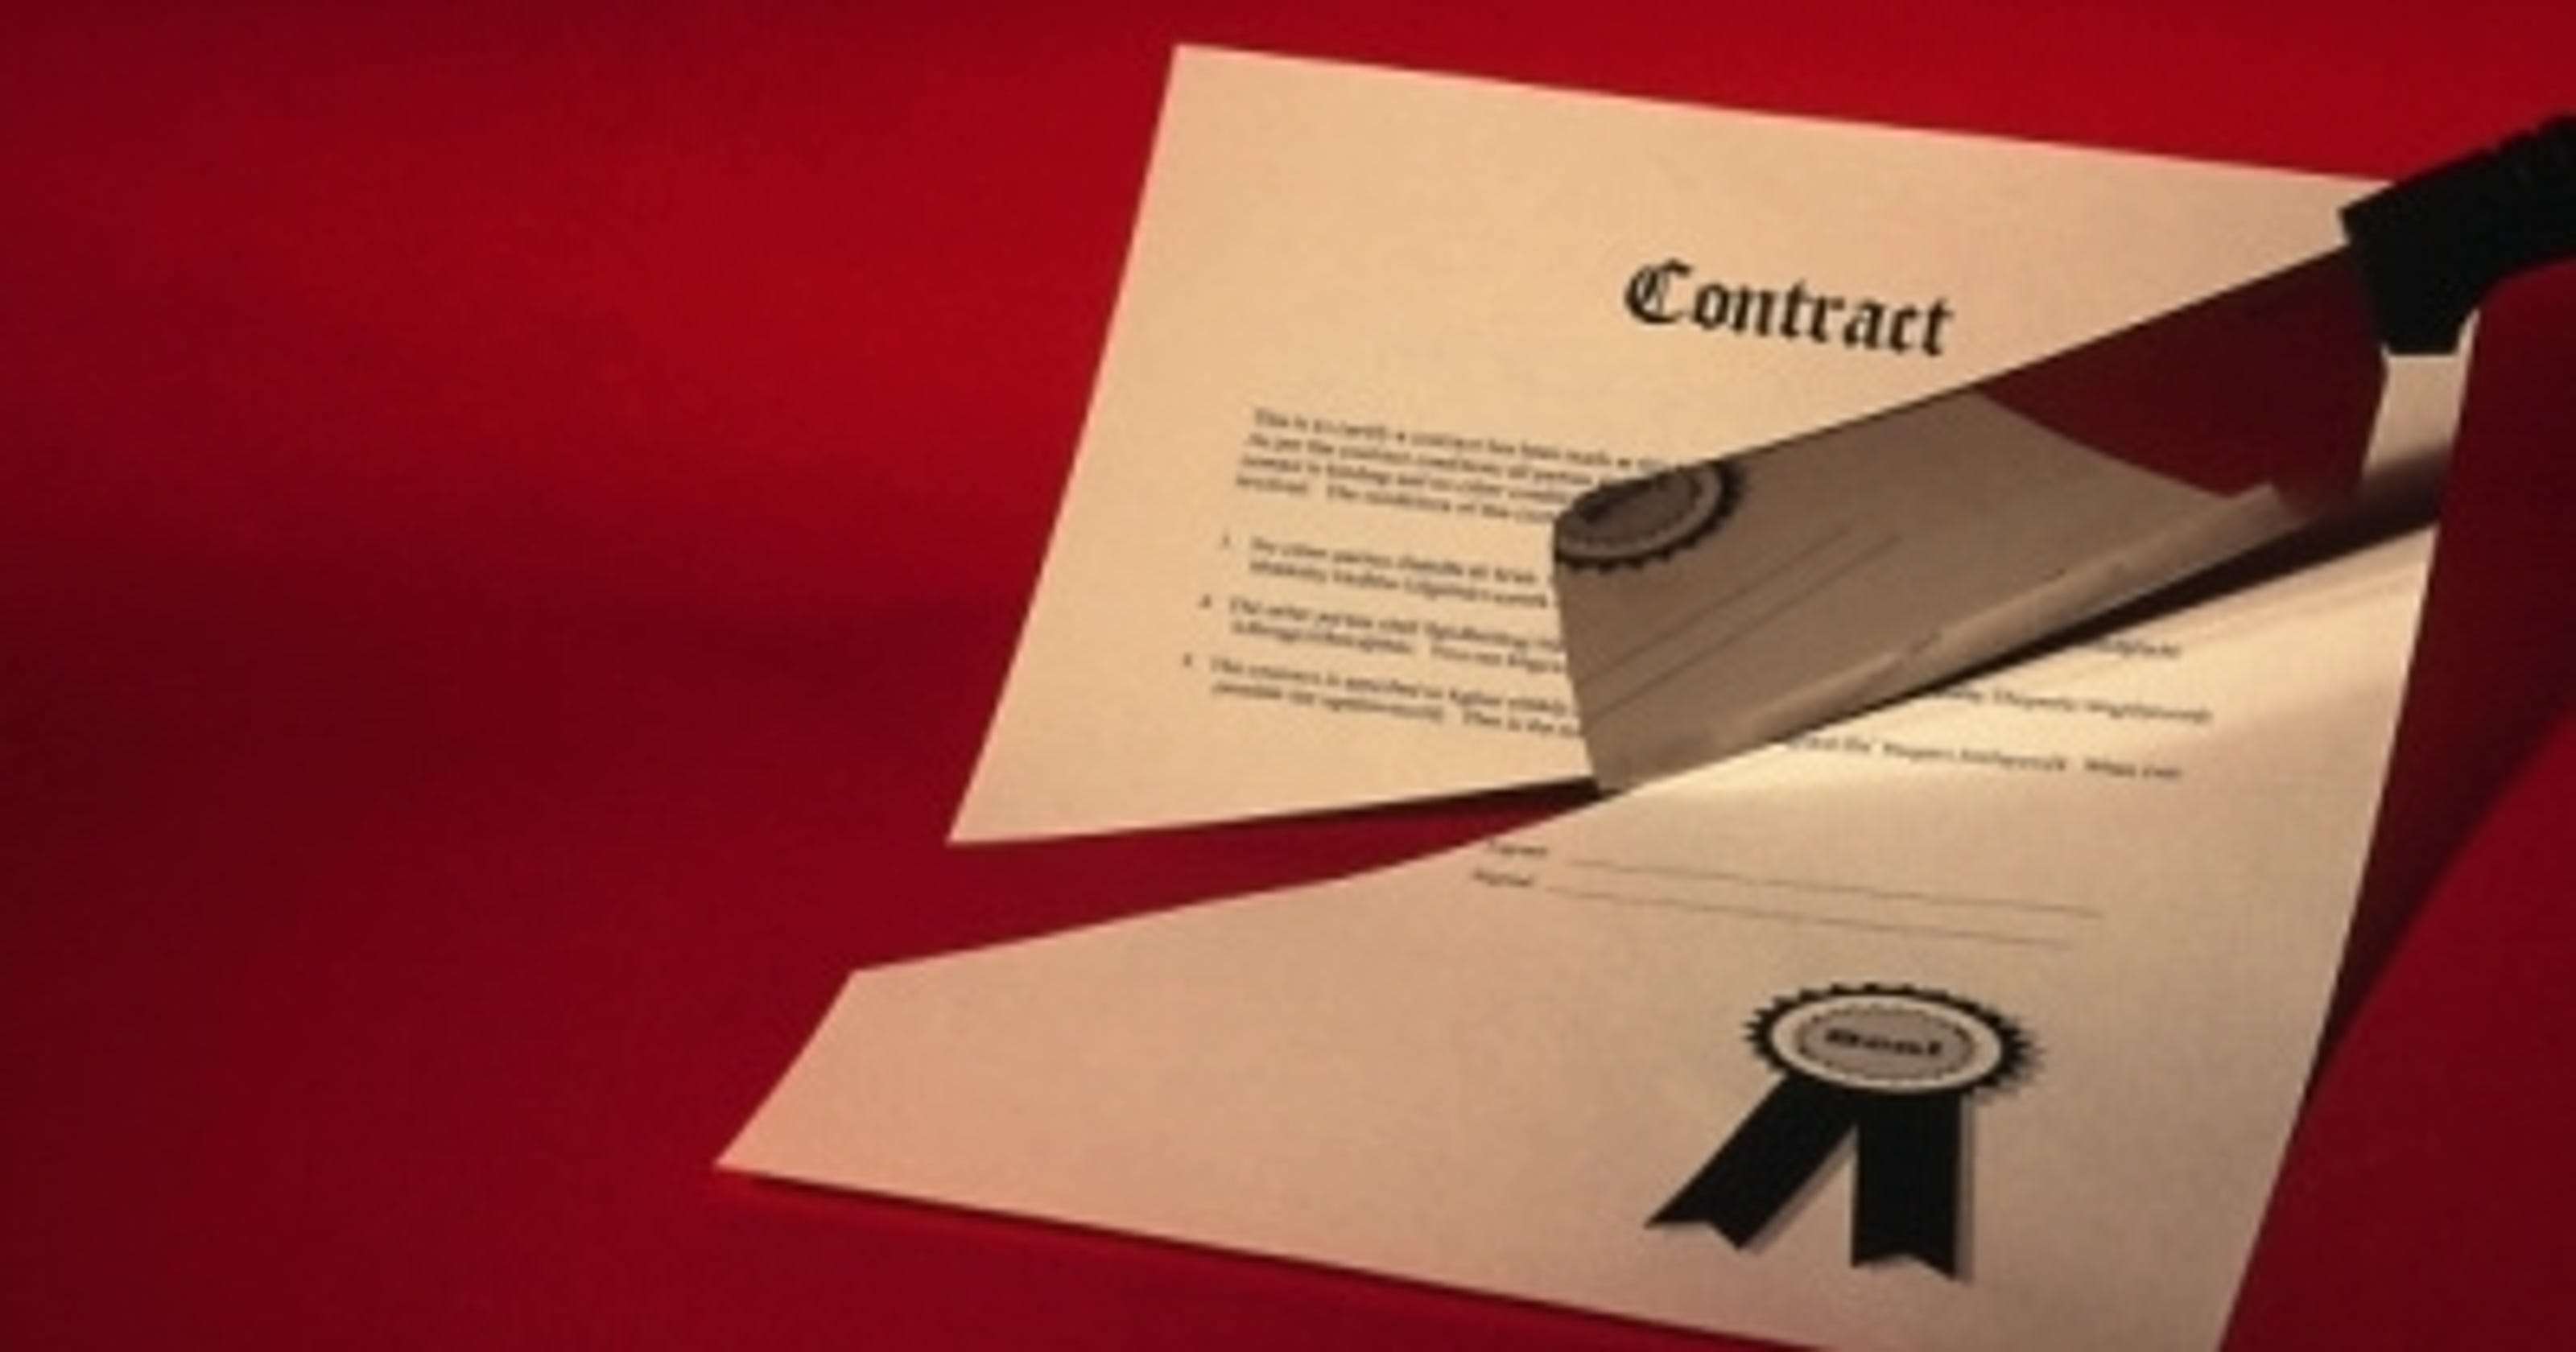 Ask An Expert Contracts Have Many Loopholes